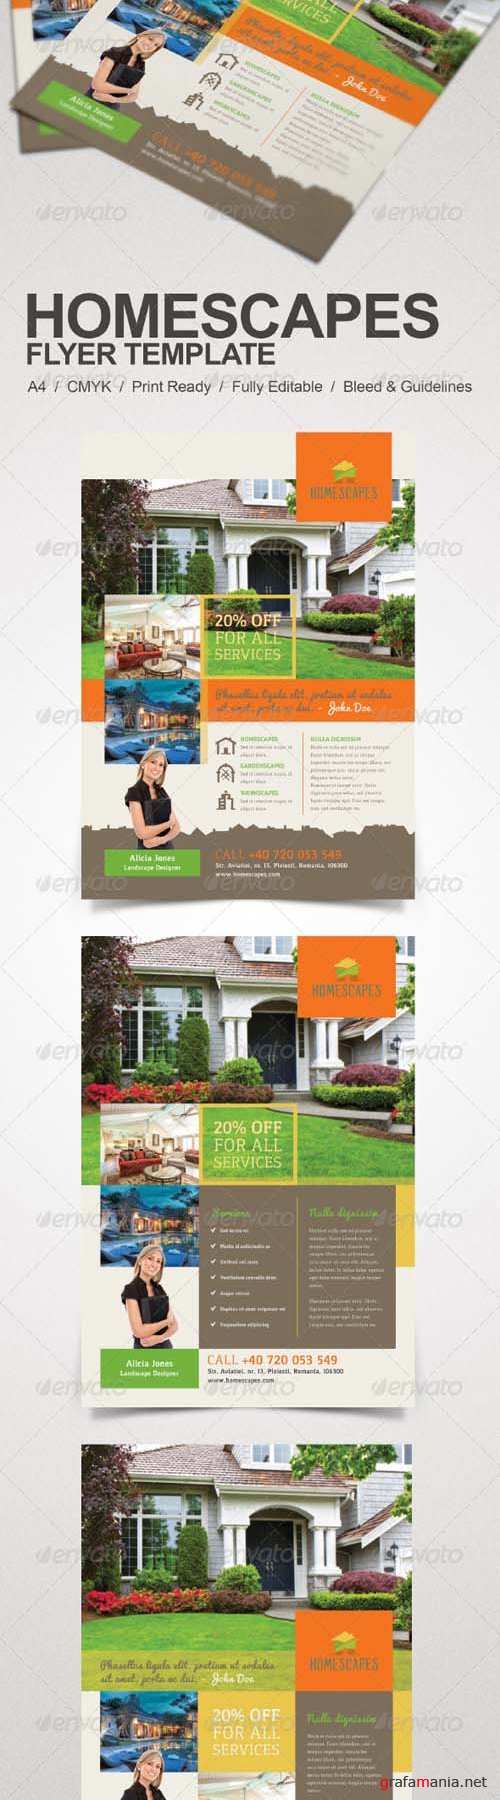 Real Estate and Homescapes Flyer 7864110